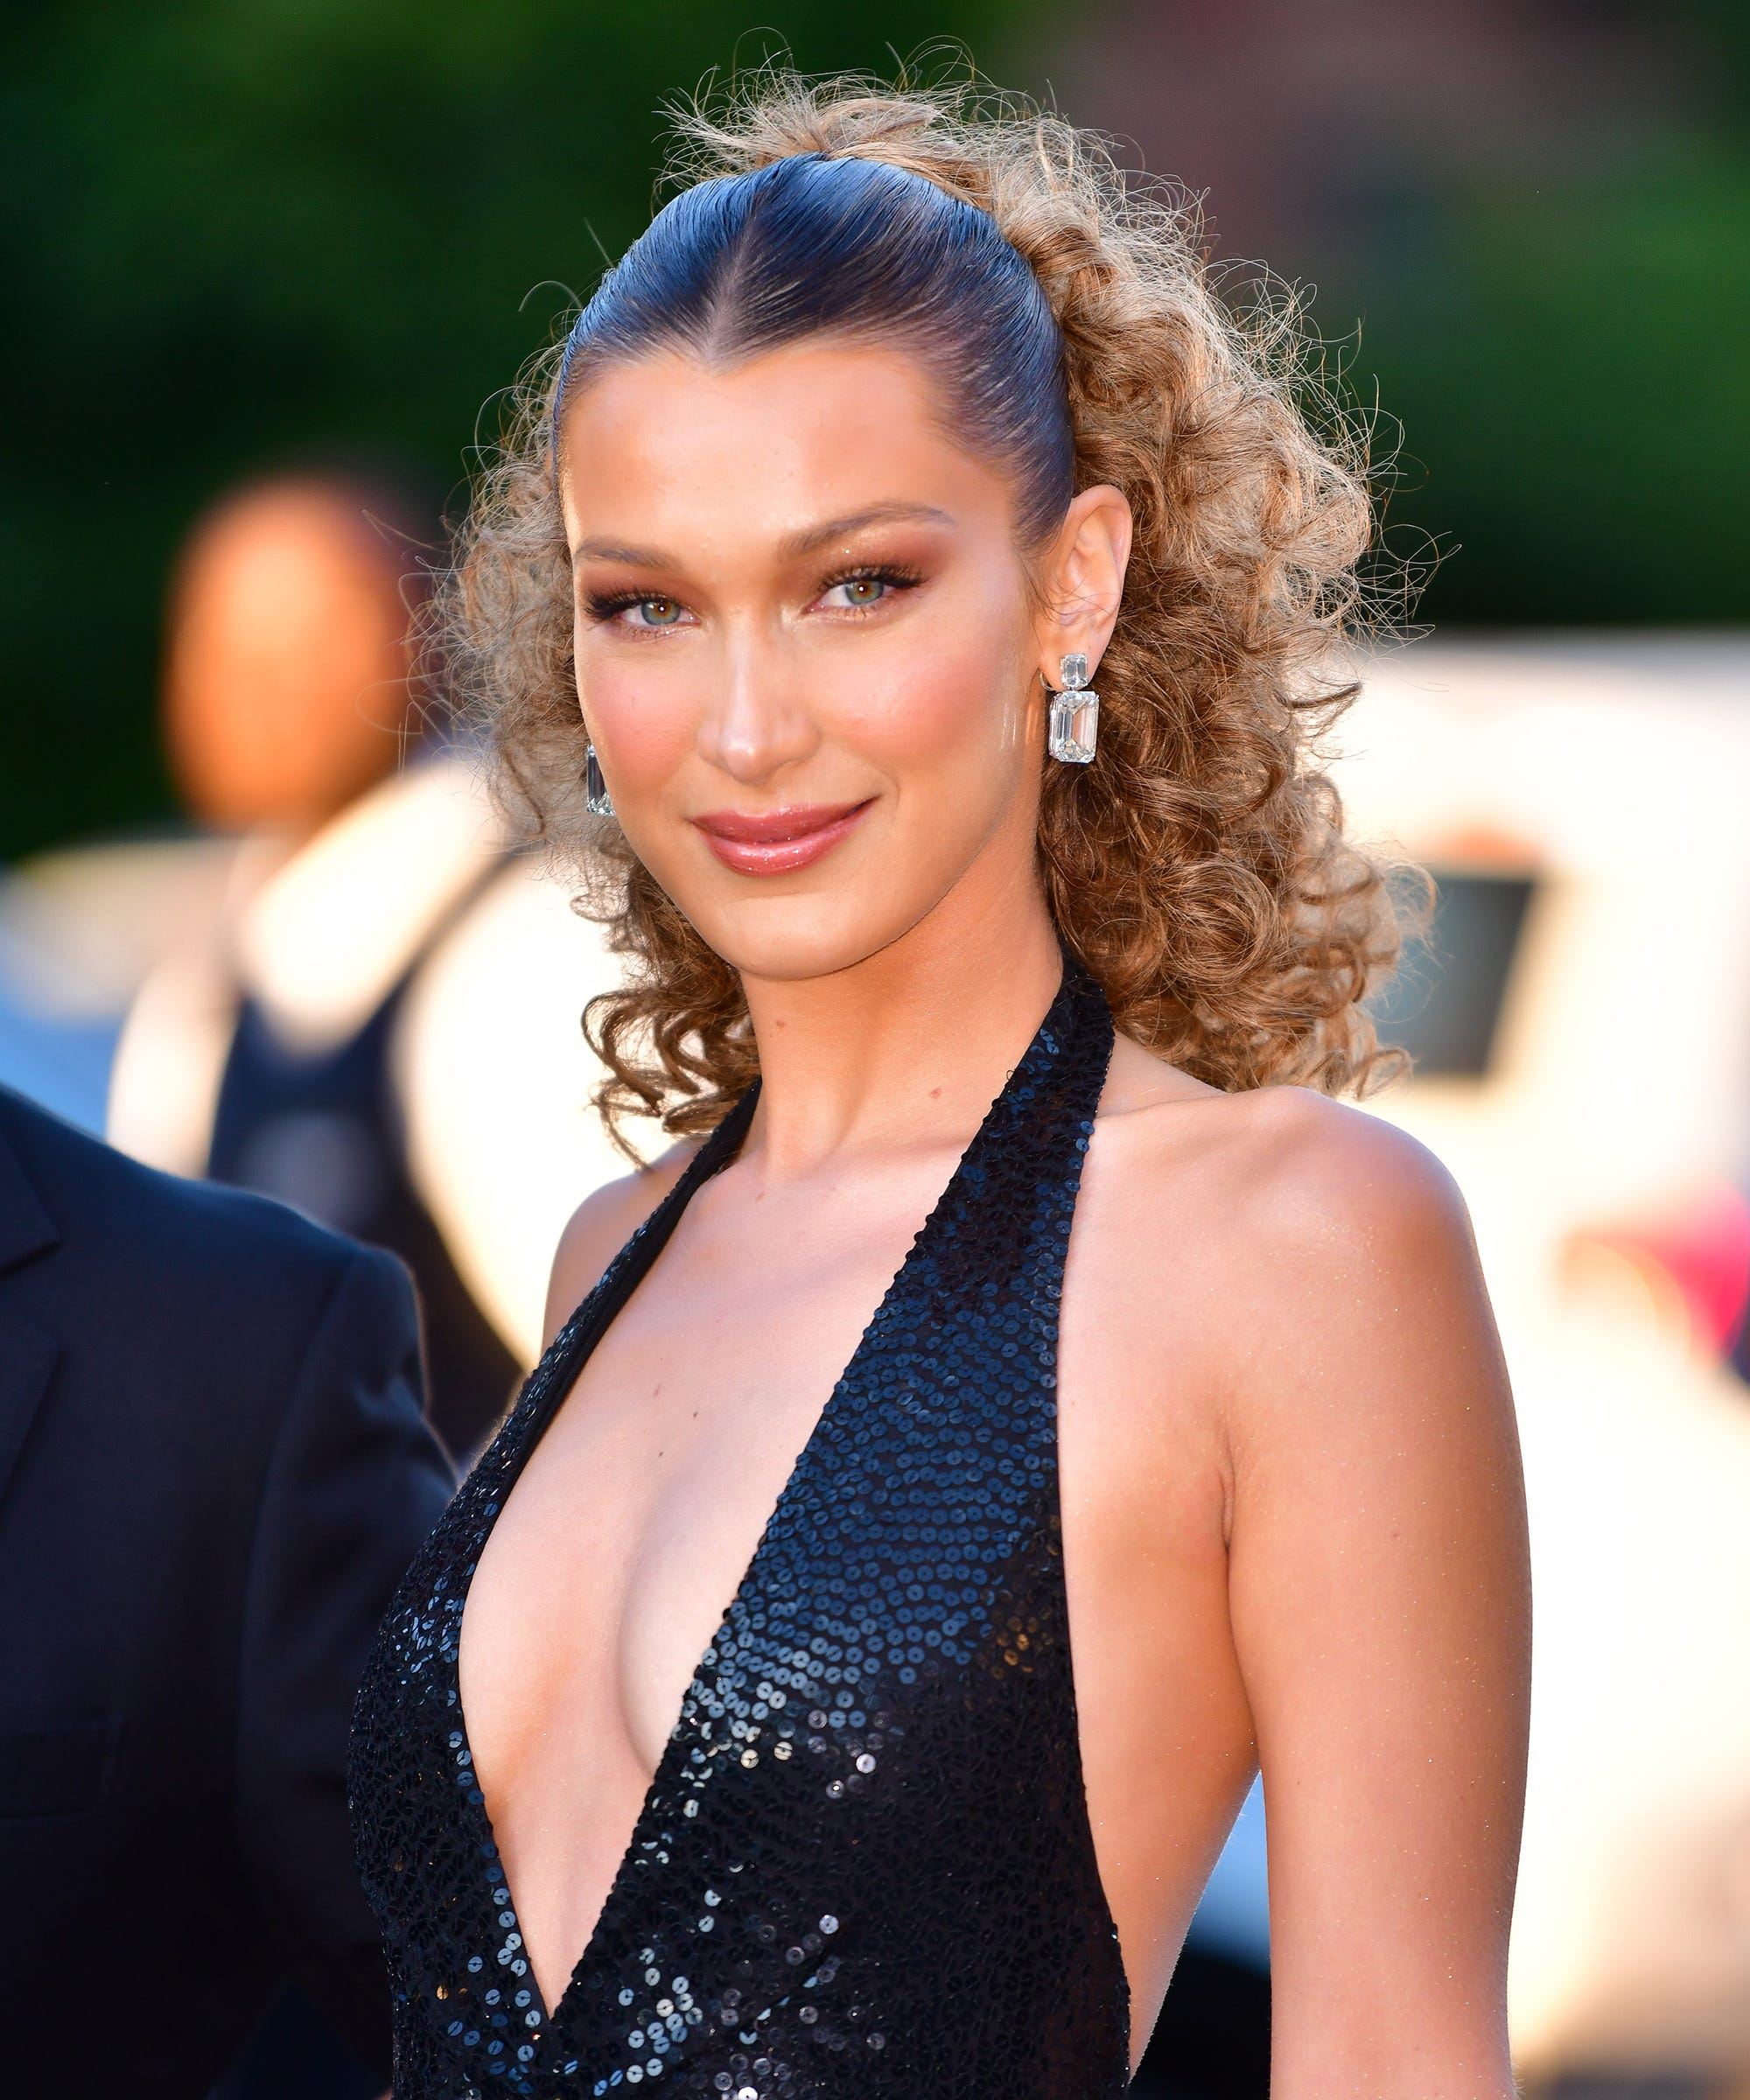 Deep French Tips Are Trending In NYC — & Bella Hadid Is On Board